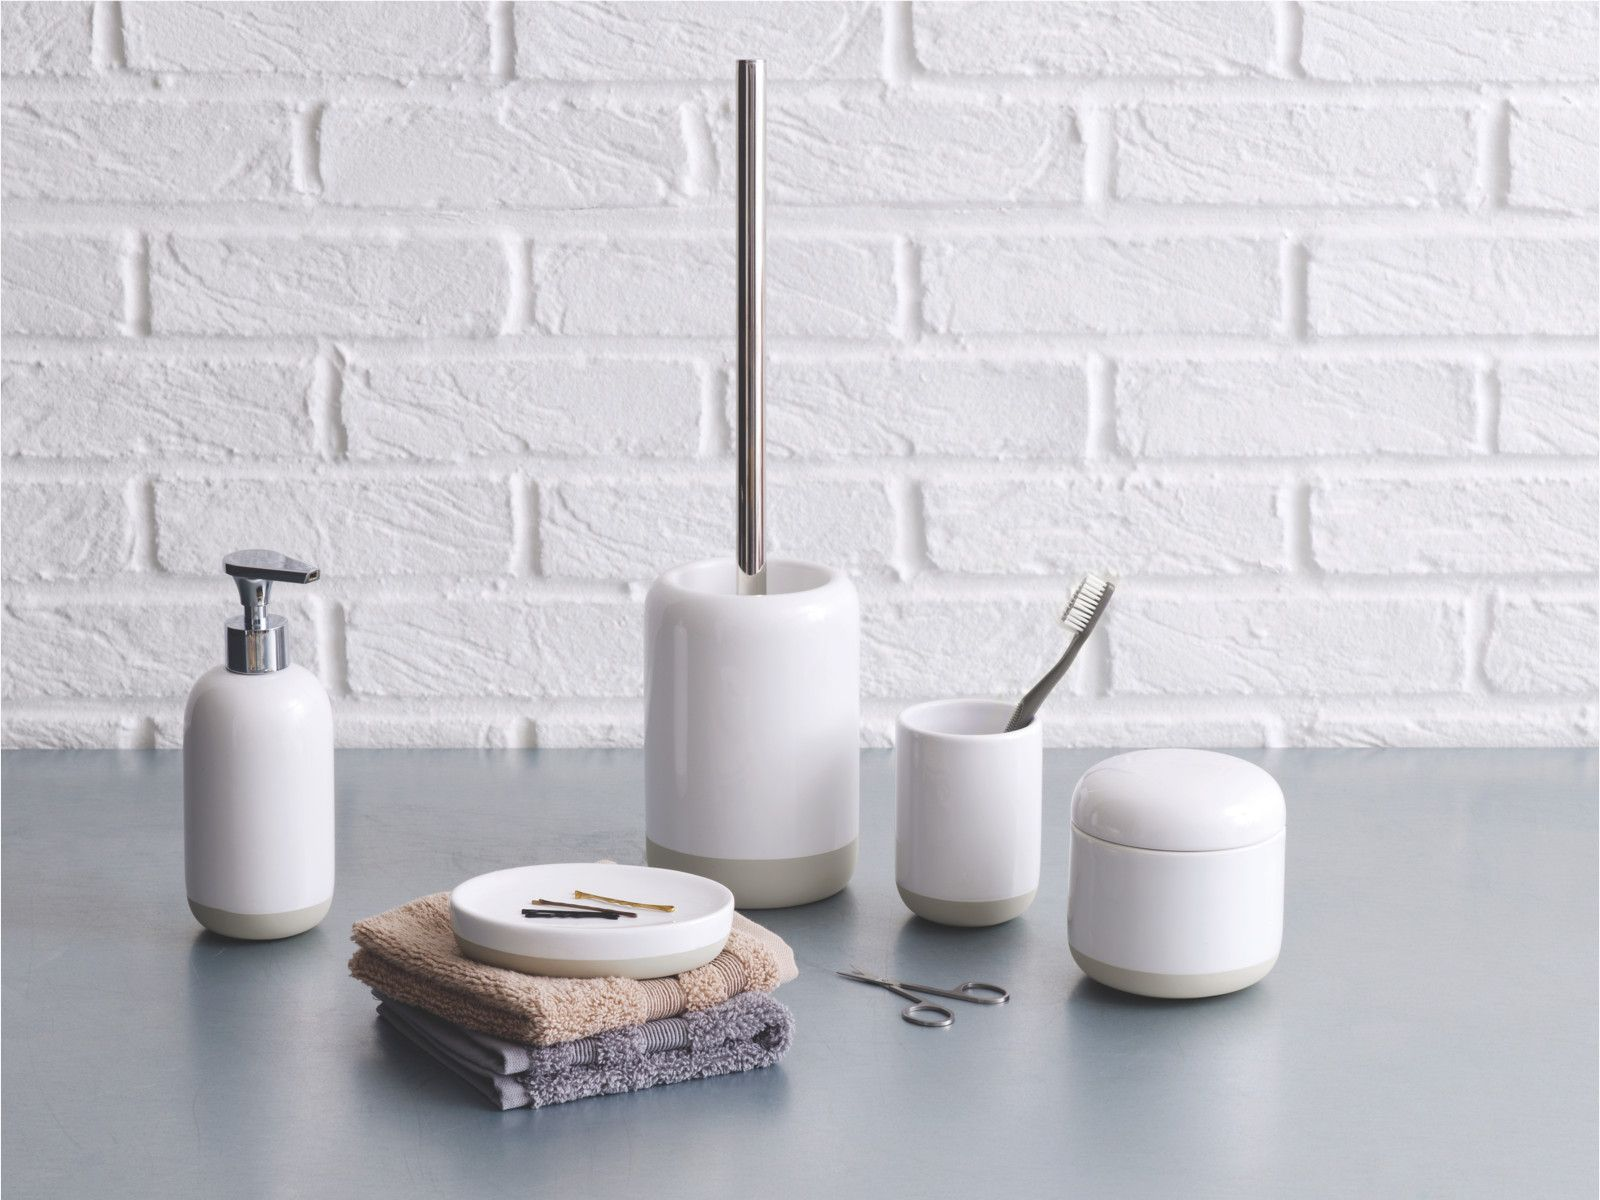 check out the new furniture and accessories from our new ss14 lookbook bathroom accessories setstoilet brushwhite - White Bathroom Accessories Uk